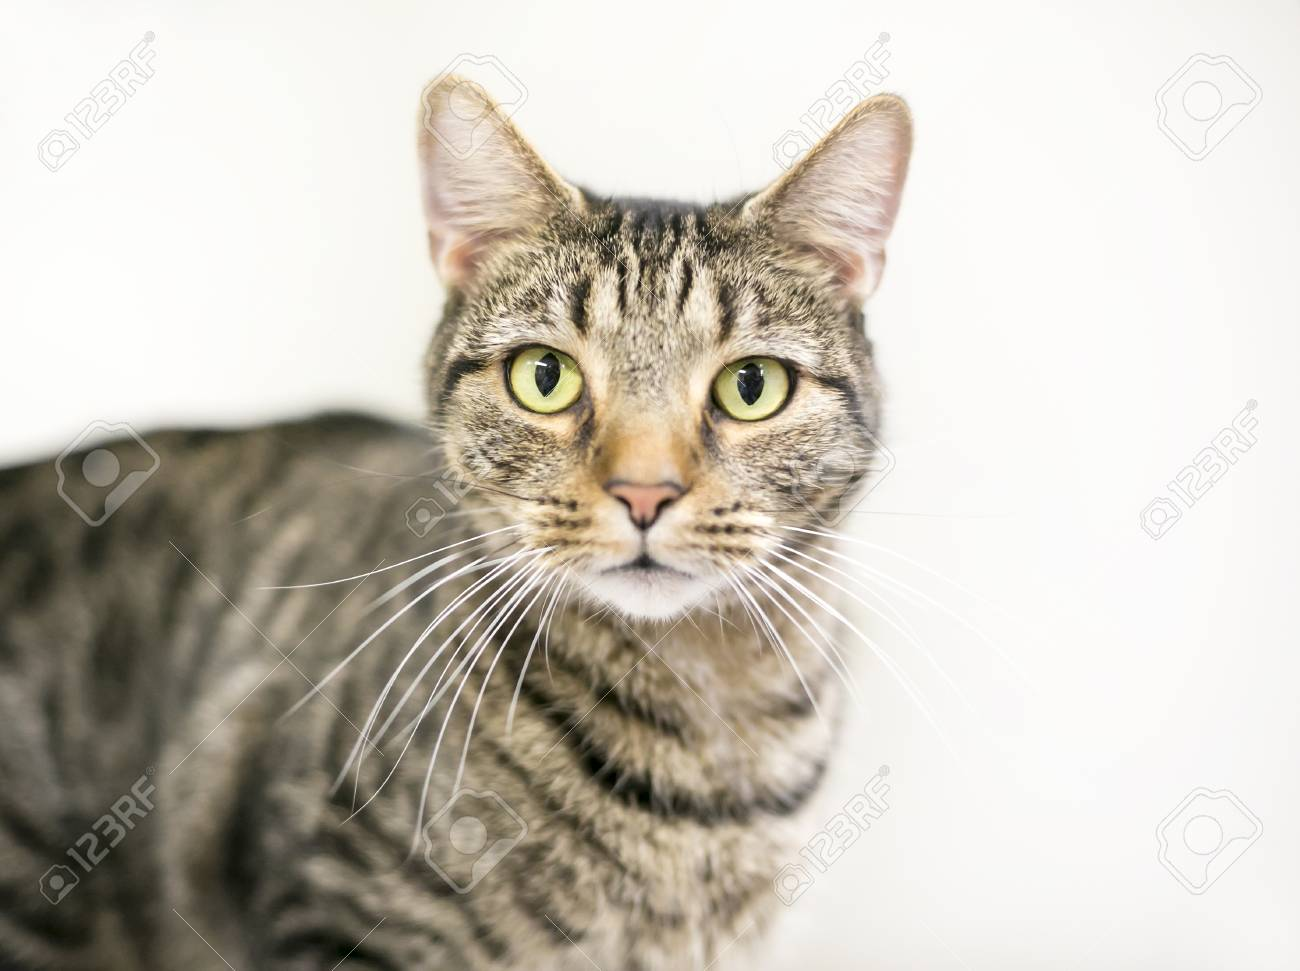 A Brown Tabby Domestic Shorthair Cat Stock Photo Picture And Royalty Free Image Image 93986664